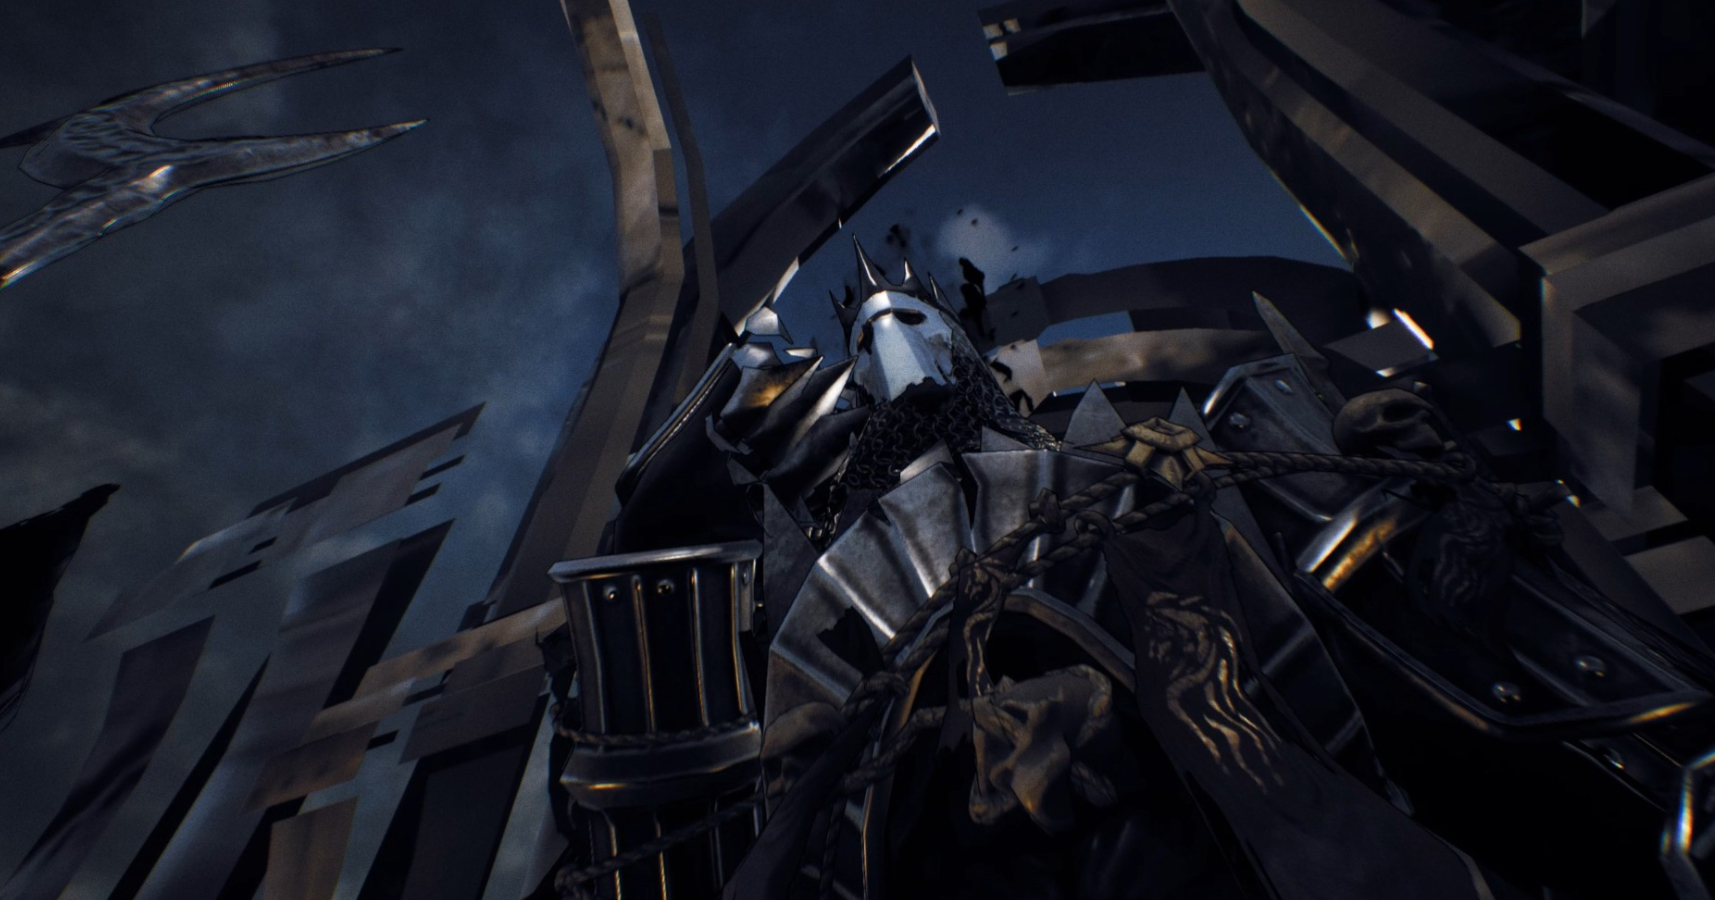 sinner sacrifice for redemption 1 - Sinner: Sacrifice for Redemption is Dark Souls with a Biblical touch